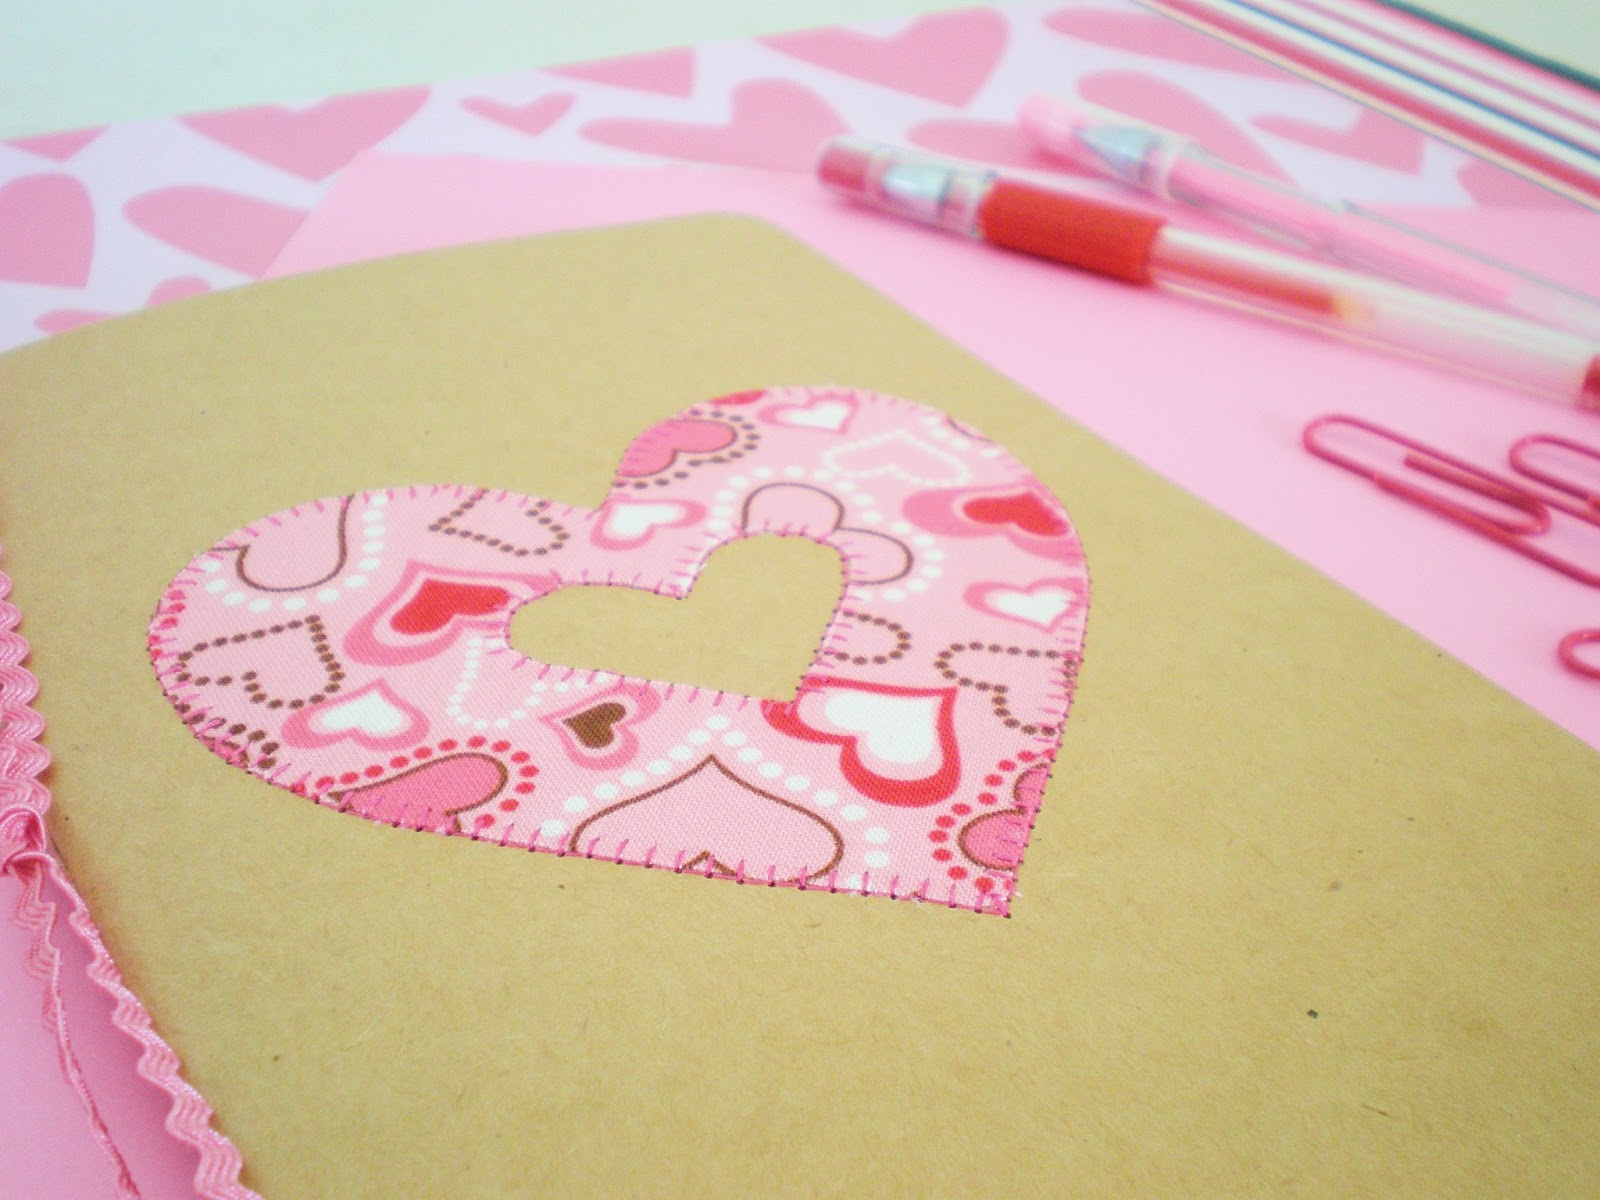 Teen Craft: Monogrammed Notebooks | A Spoonful of Sugar